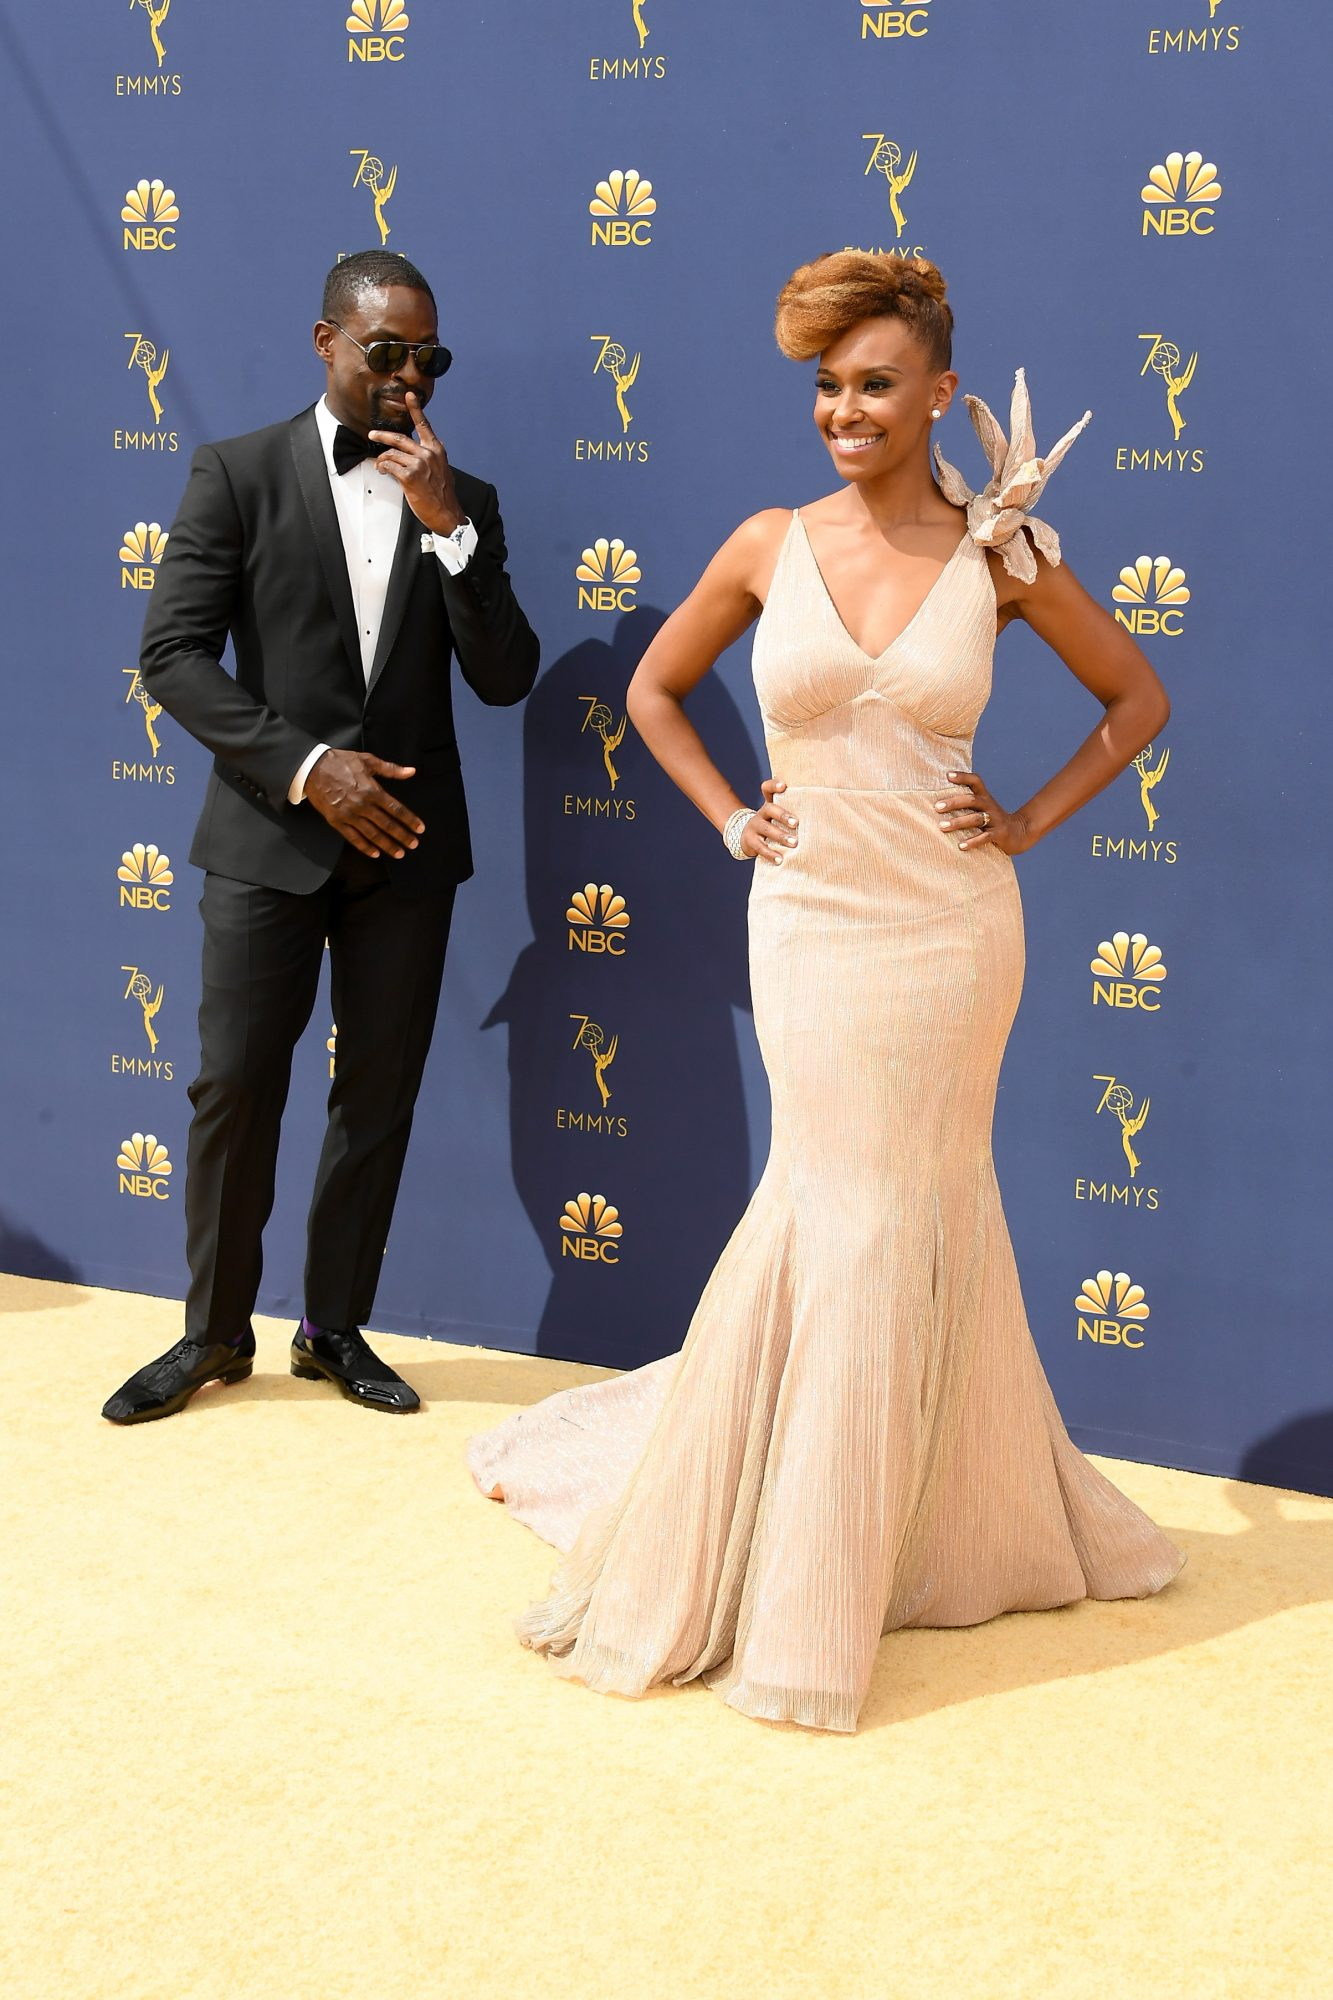 Sterling K. Brown and Ryan Michelle Bathe Emmys 2018